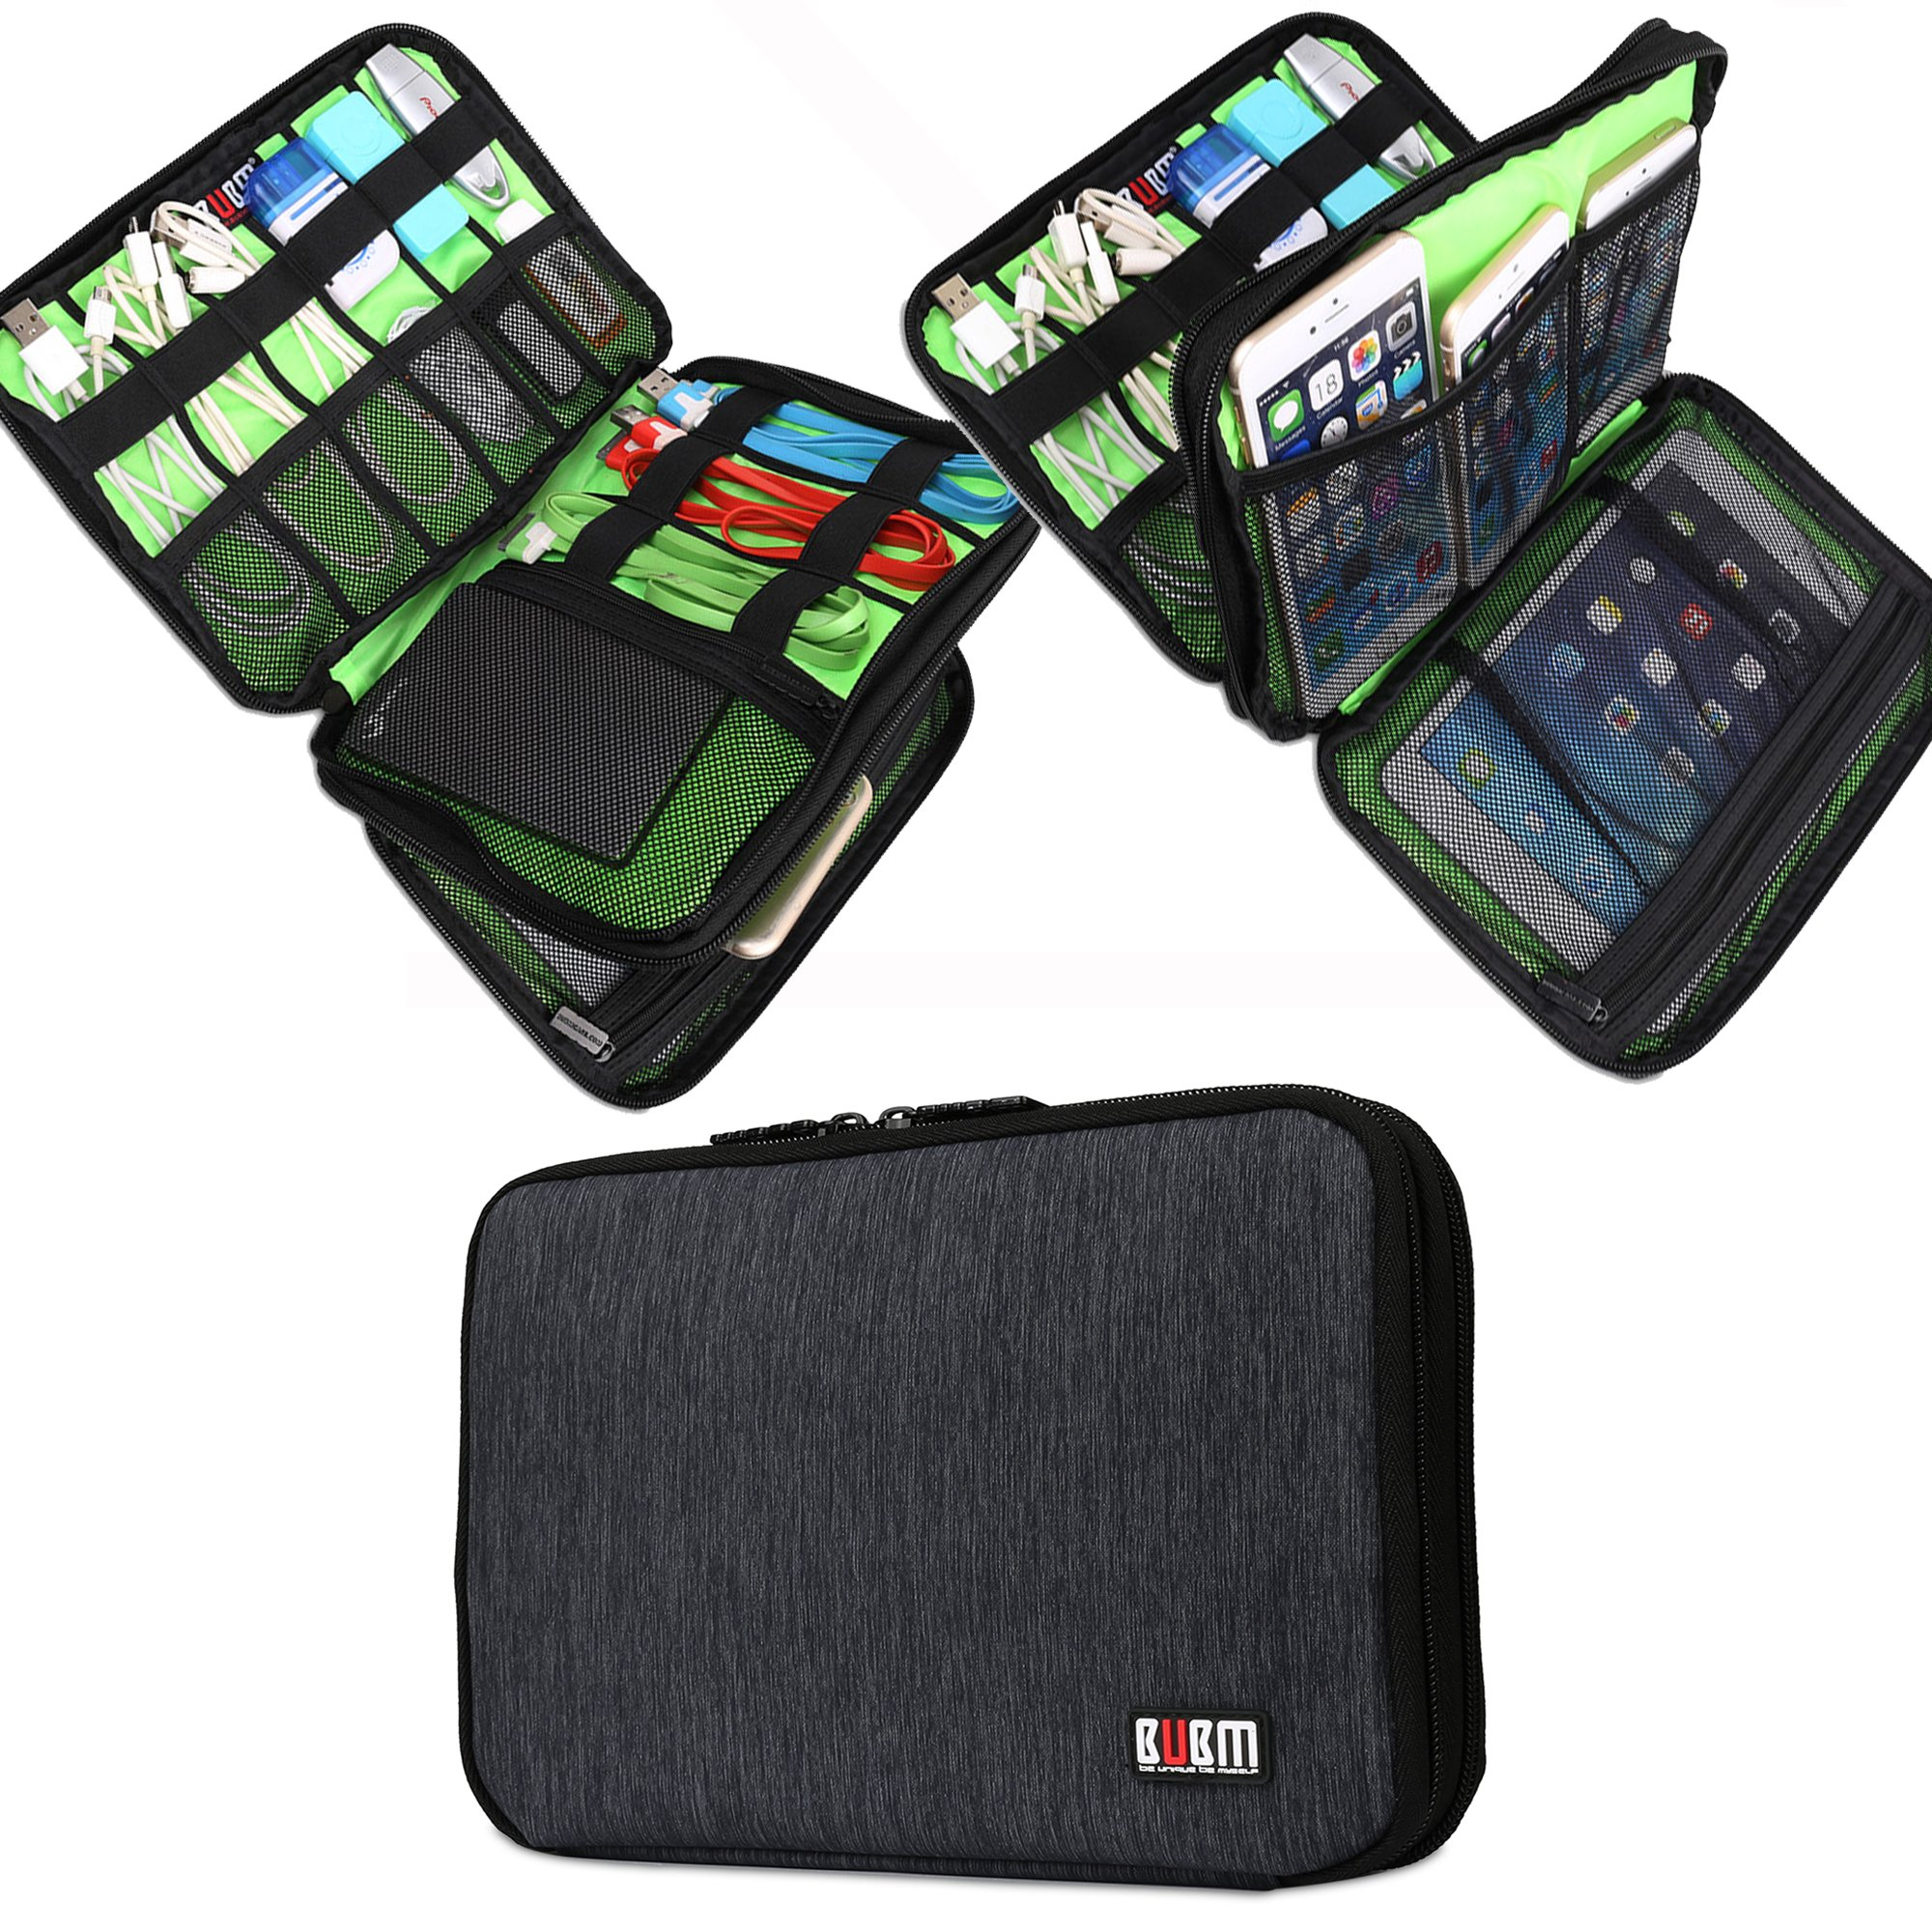 BUBM Cable Cord Organizer Electronics Accessories Case USB Cable, Phone Travel Gadget Bag